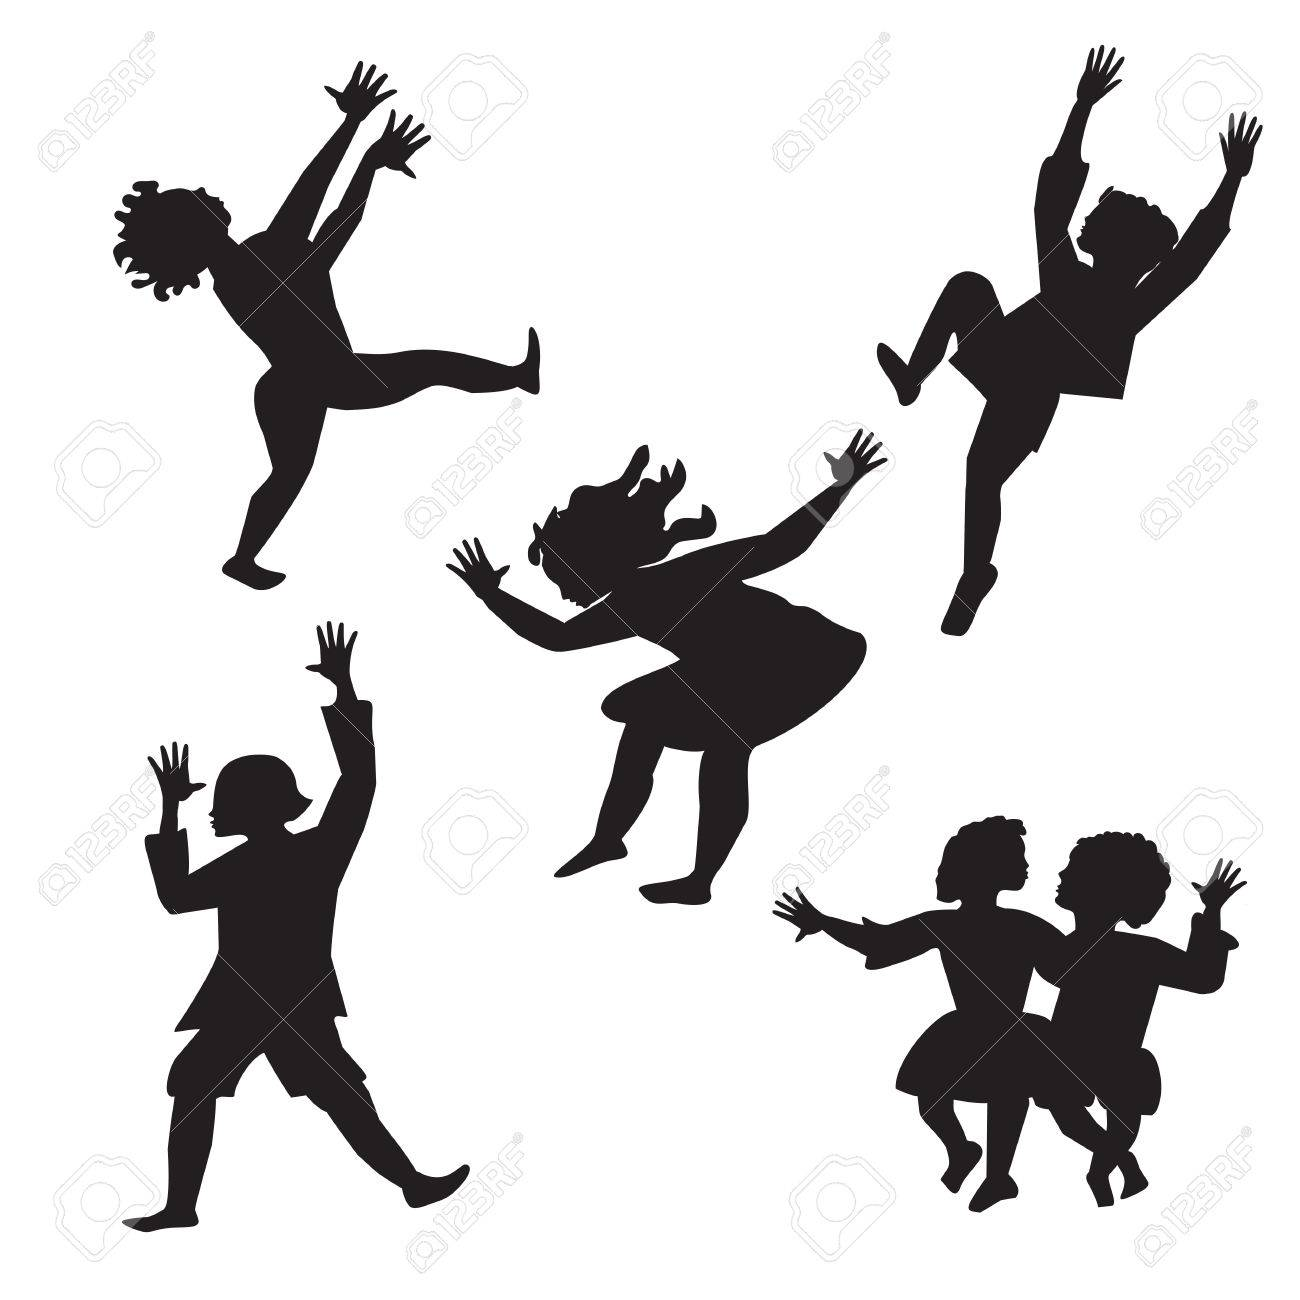 children dancing black and white silhouette isolated abstract...